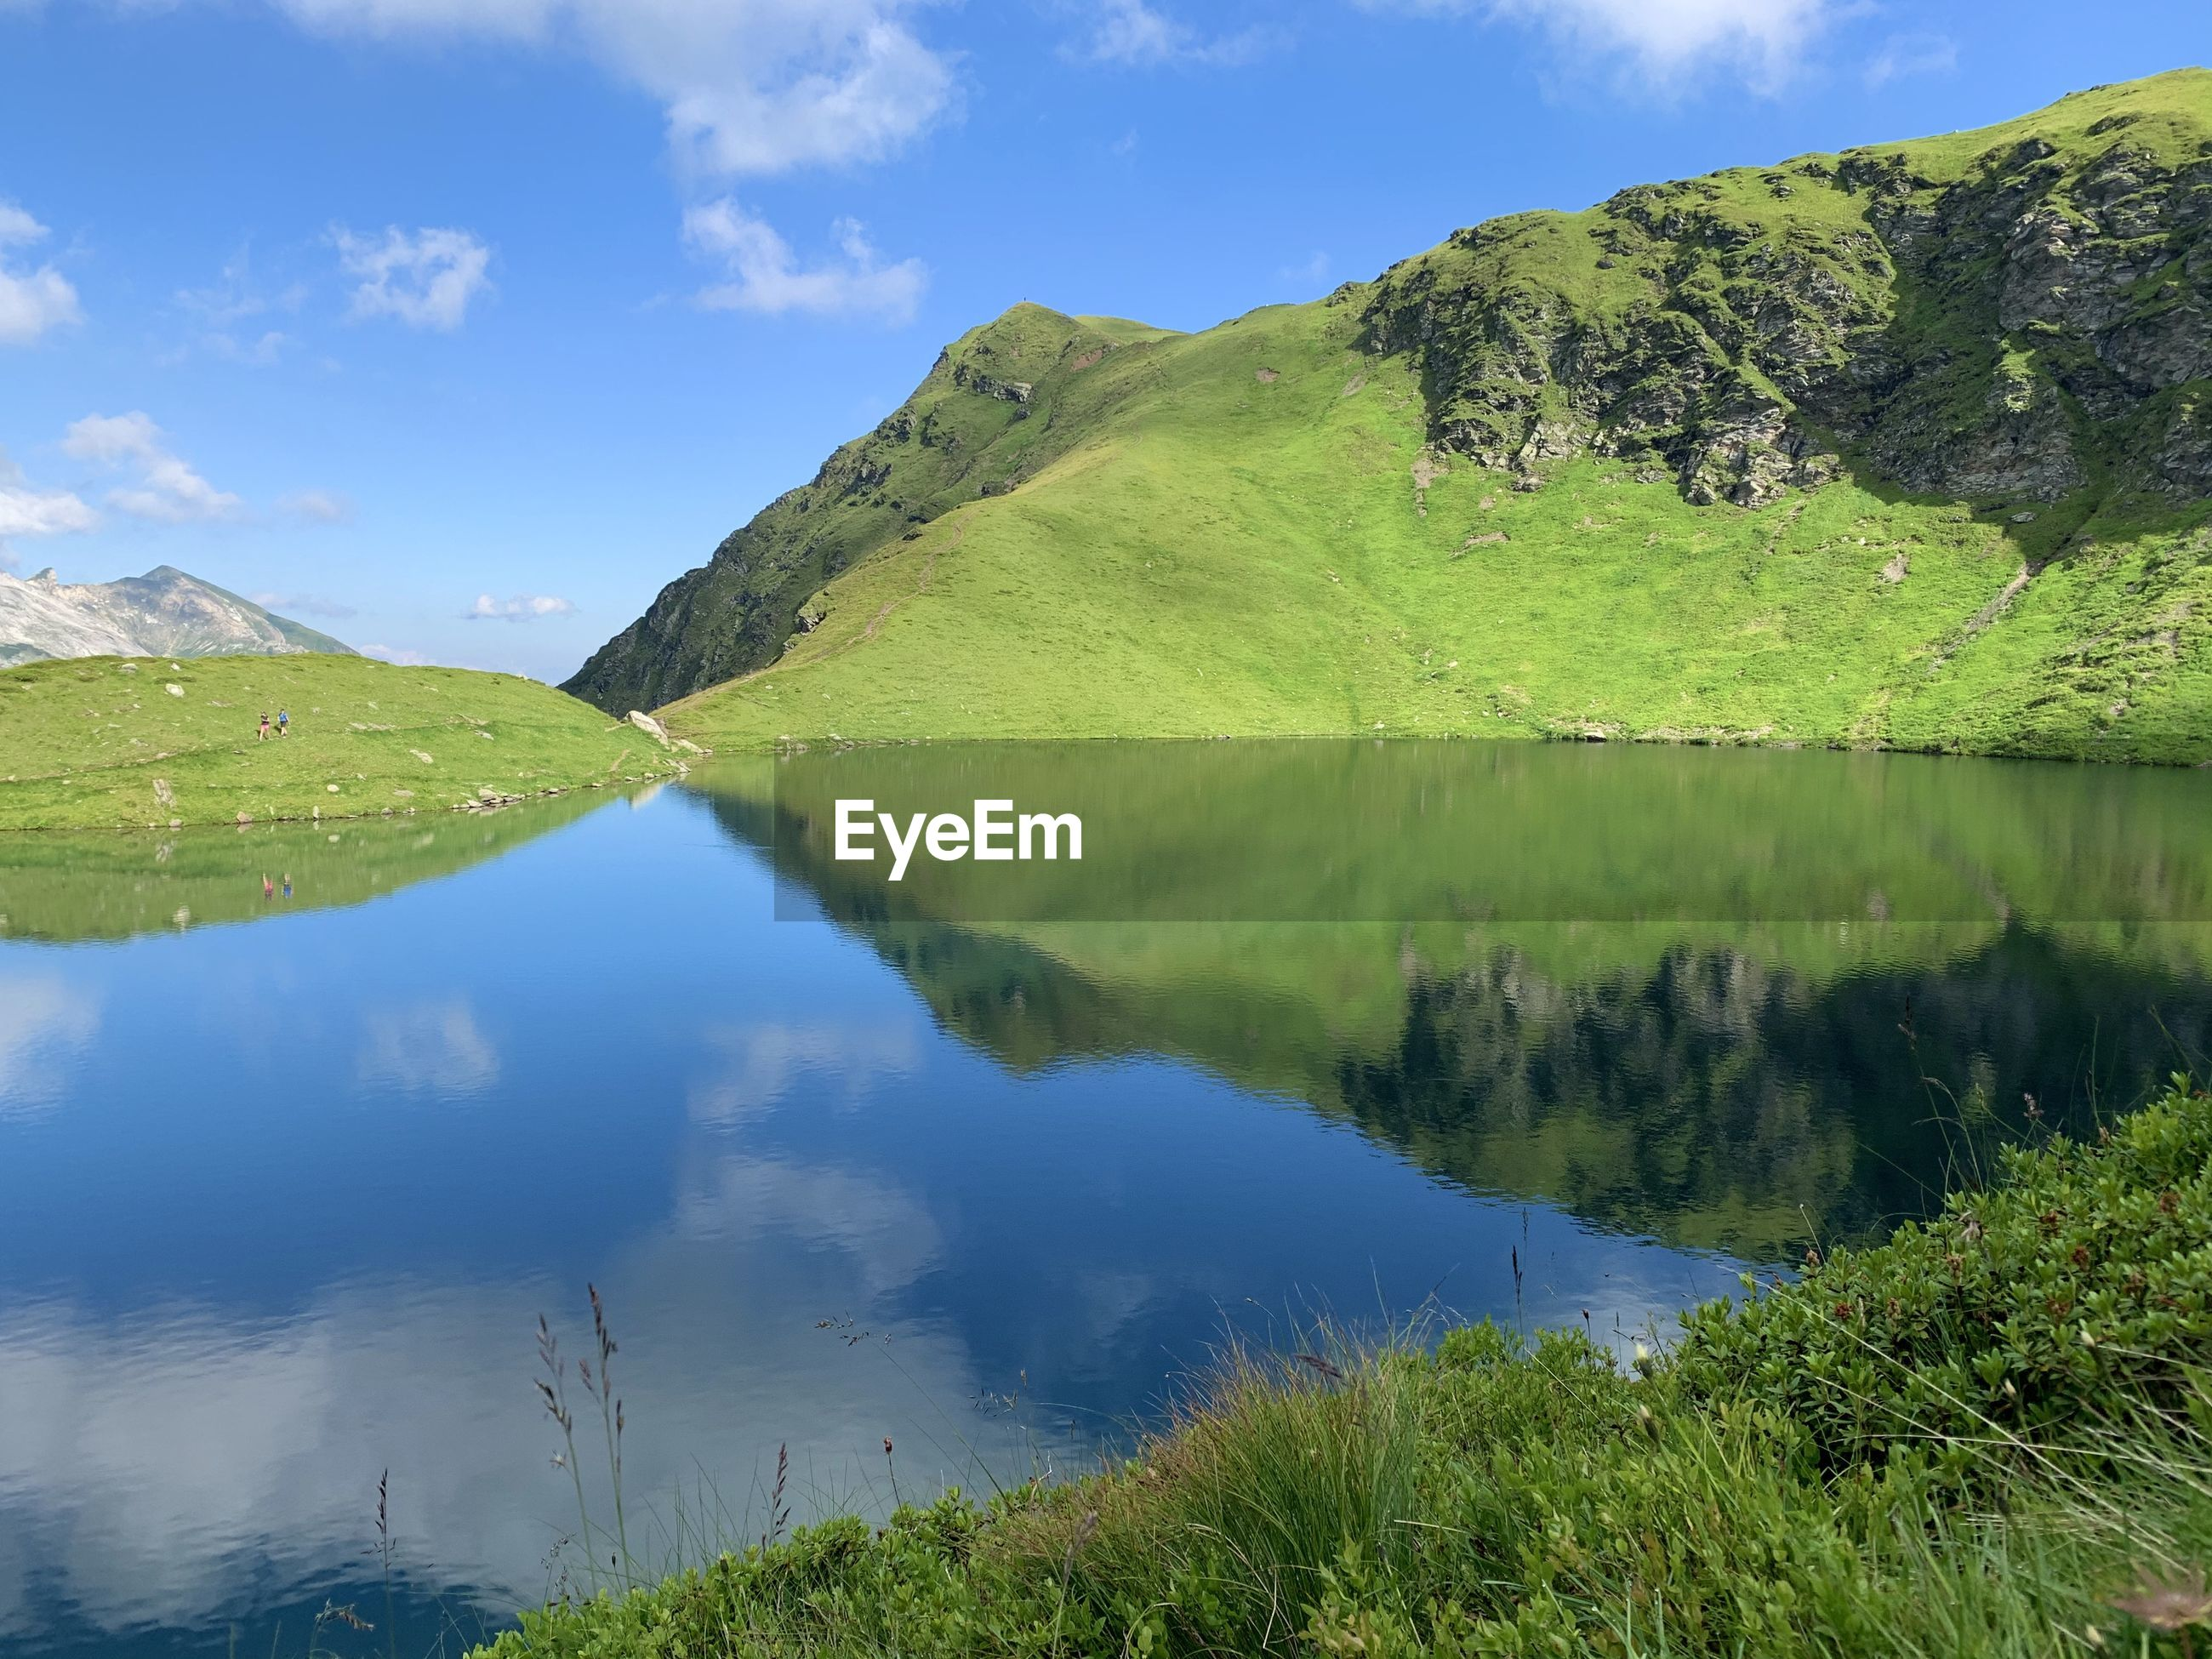 SCENIC VIEW OF LAKE AND GREEN MOUNTAINS AGAINST SKY